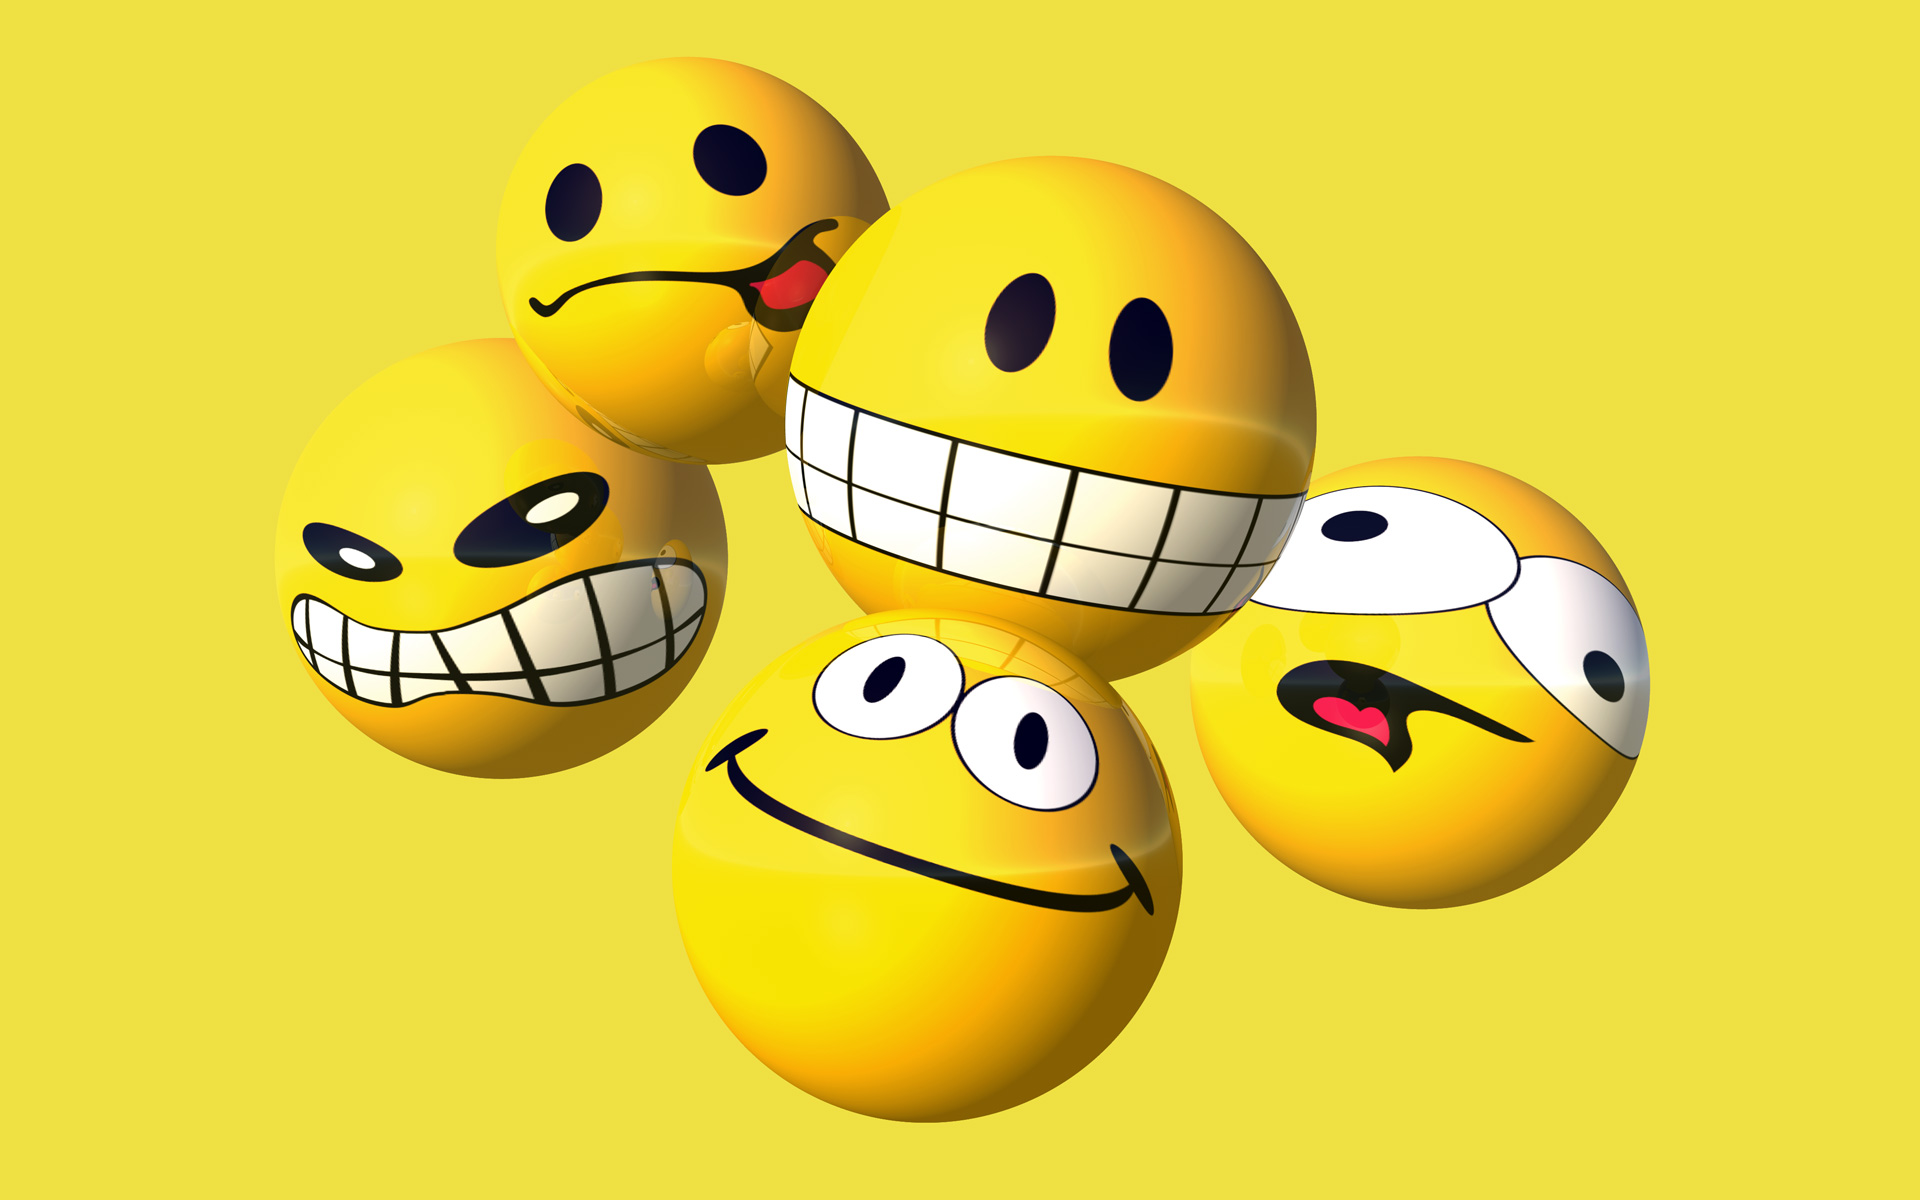 Smileys wallpapers for mobile